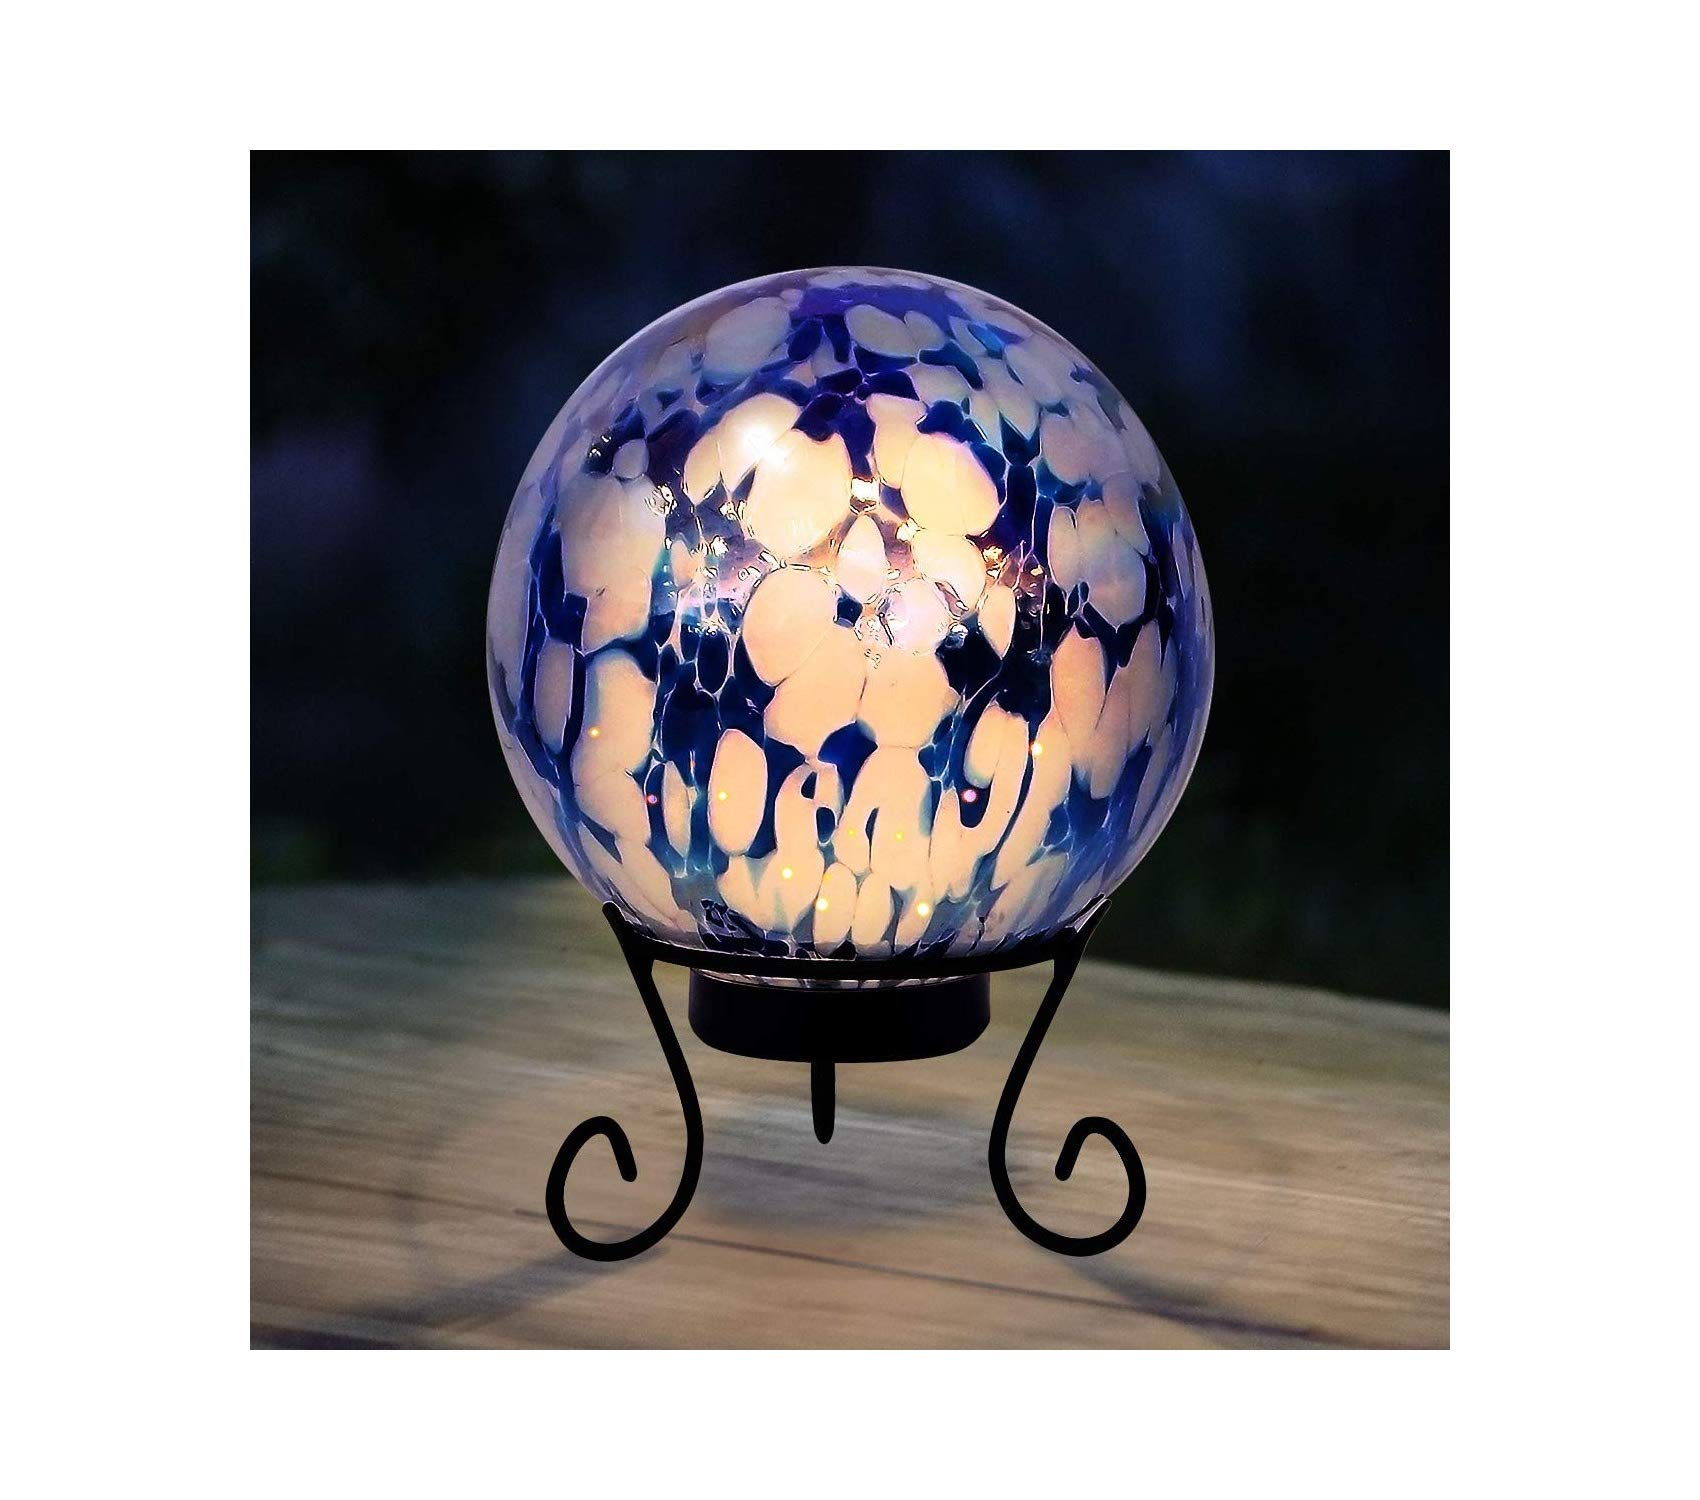 Outdoor Garden Backyard Décor Gazing Globe with LED Light, 10 Inch Tall Blue and White by Garden Décor (Image #2)